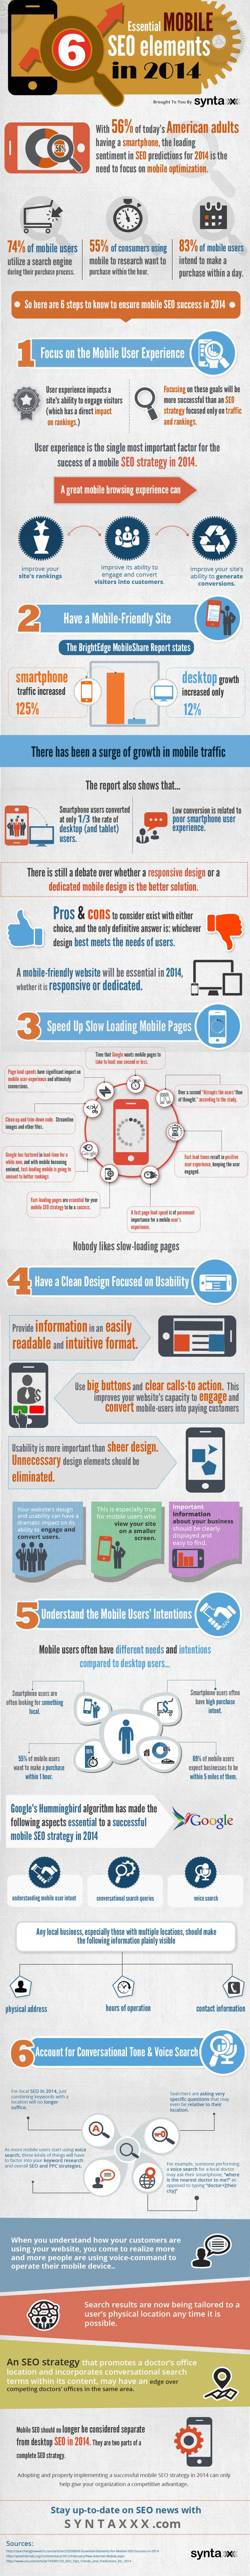 6 Essential #Mobile #SEO Elements in 2014